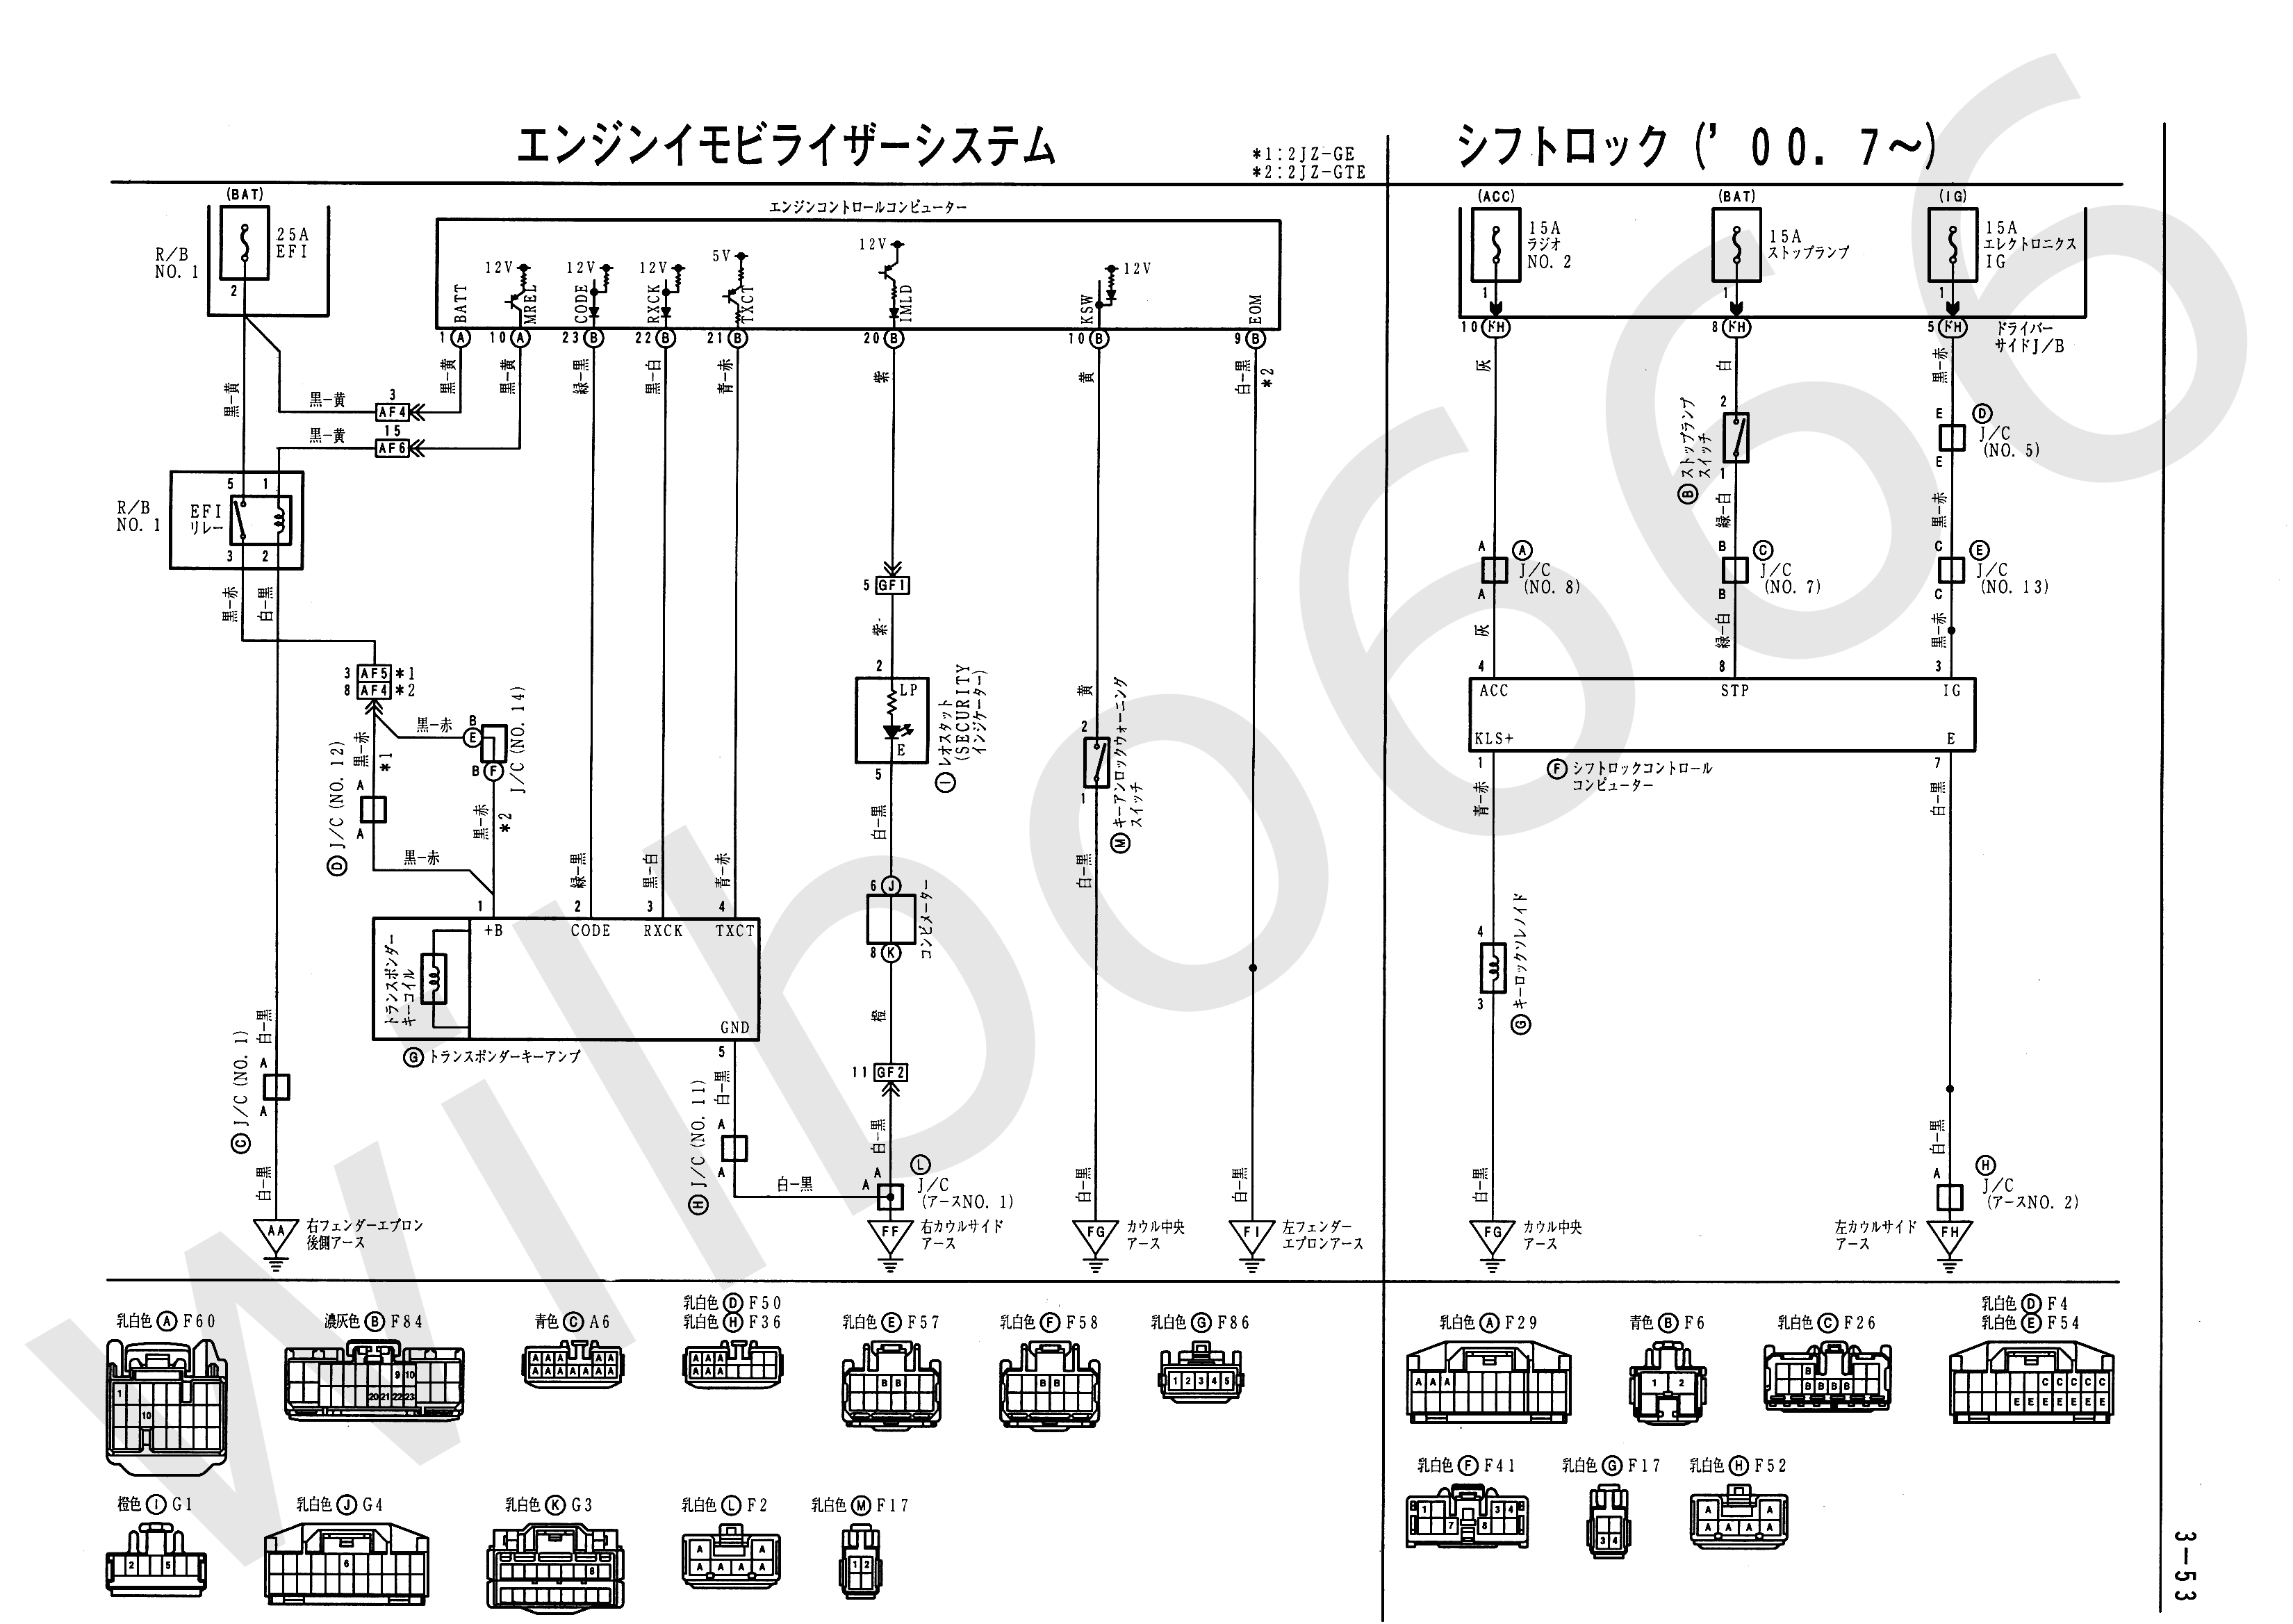 Wilbo666 2jz Gte Vvti Jzs161 Aristo Engine Wiring Electric Meter Form Diagrams